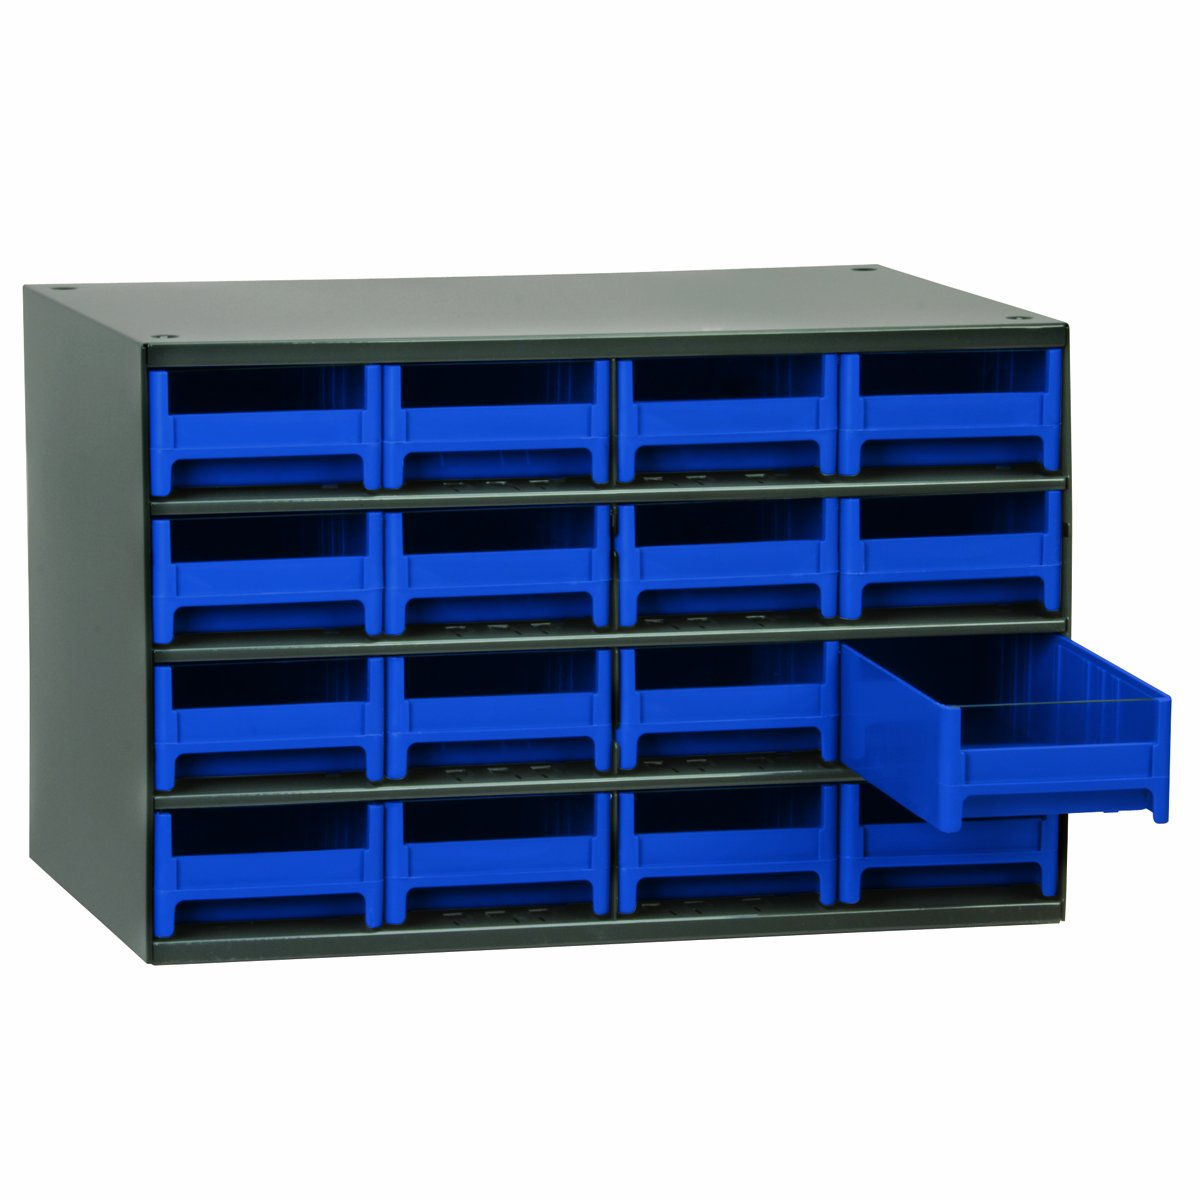 Akro-Mils 19416 17-Inch W by 11-Inch H by 11-Inch D 16 Drawer Steel Parts Storage Hardware and Craft Cabinet, Blue Drawers